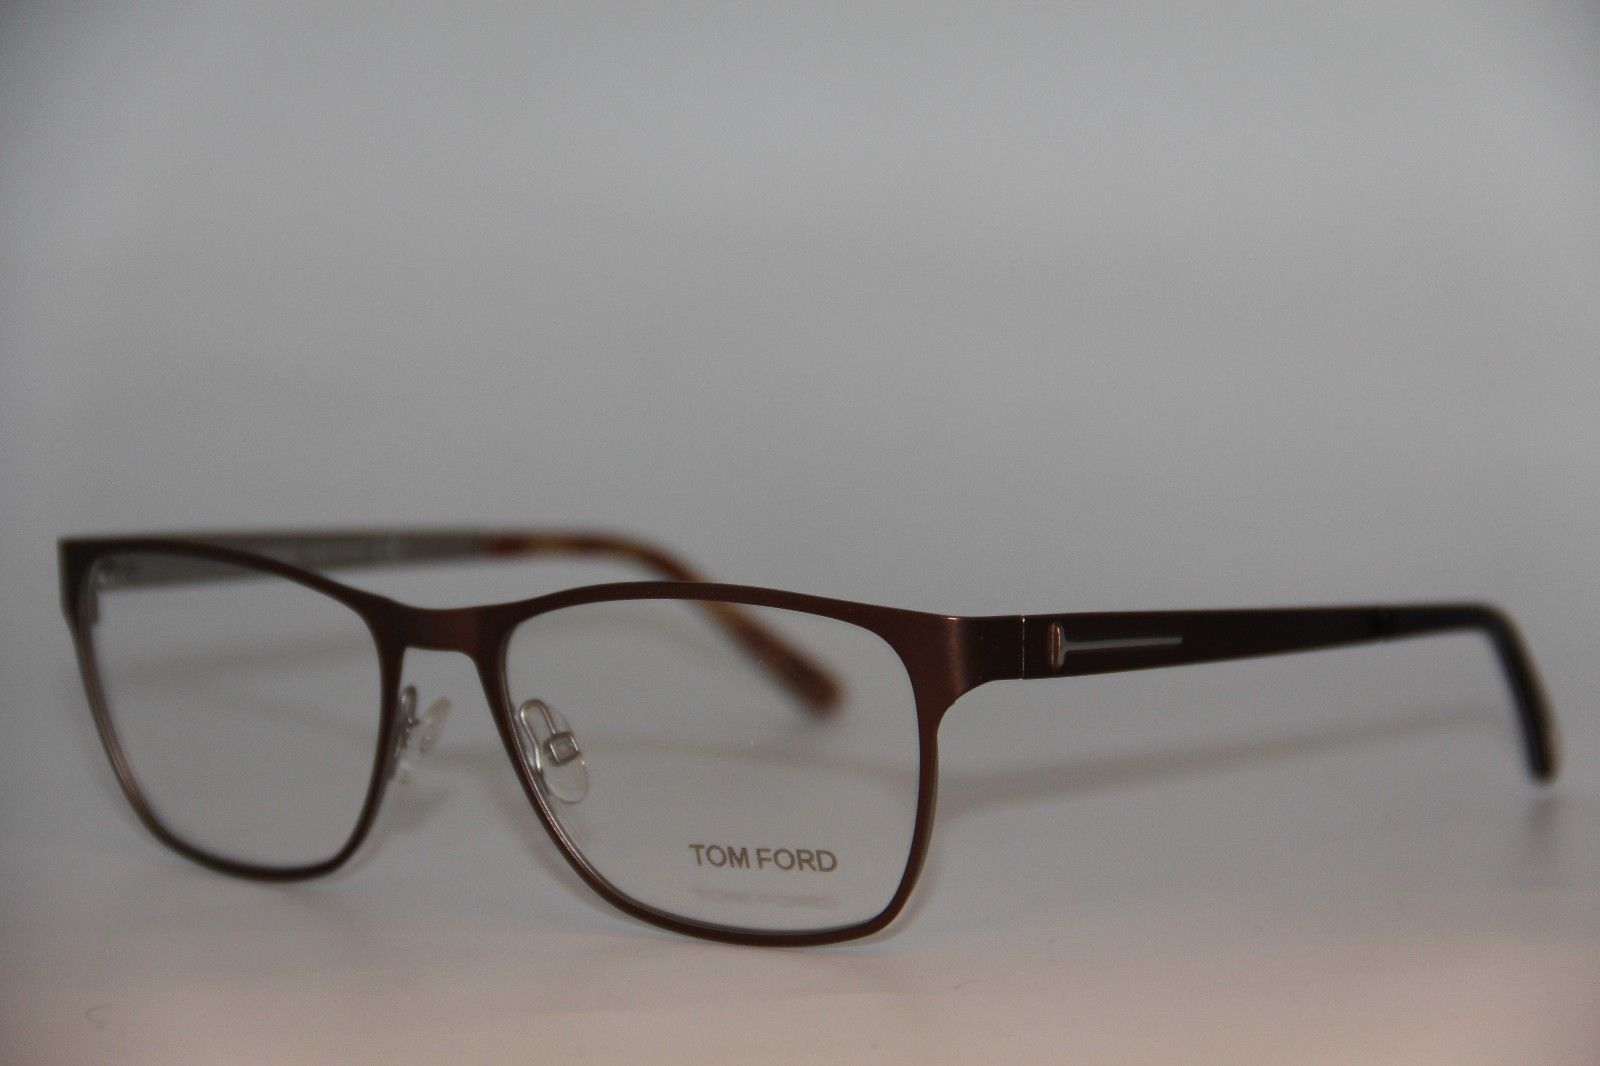 9cfdbfb0e655 New Tom Ford Tf 5242 050 Brown Eyeglasses and 50 similar items. 57